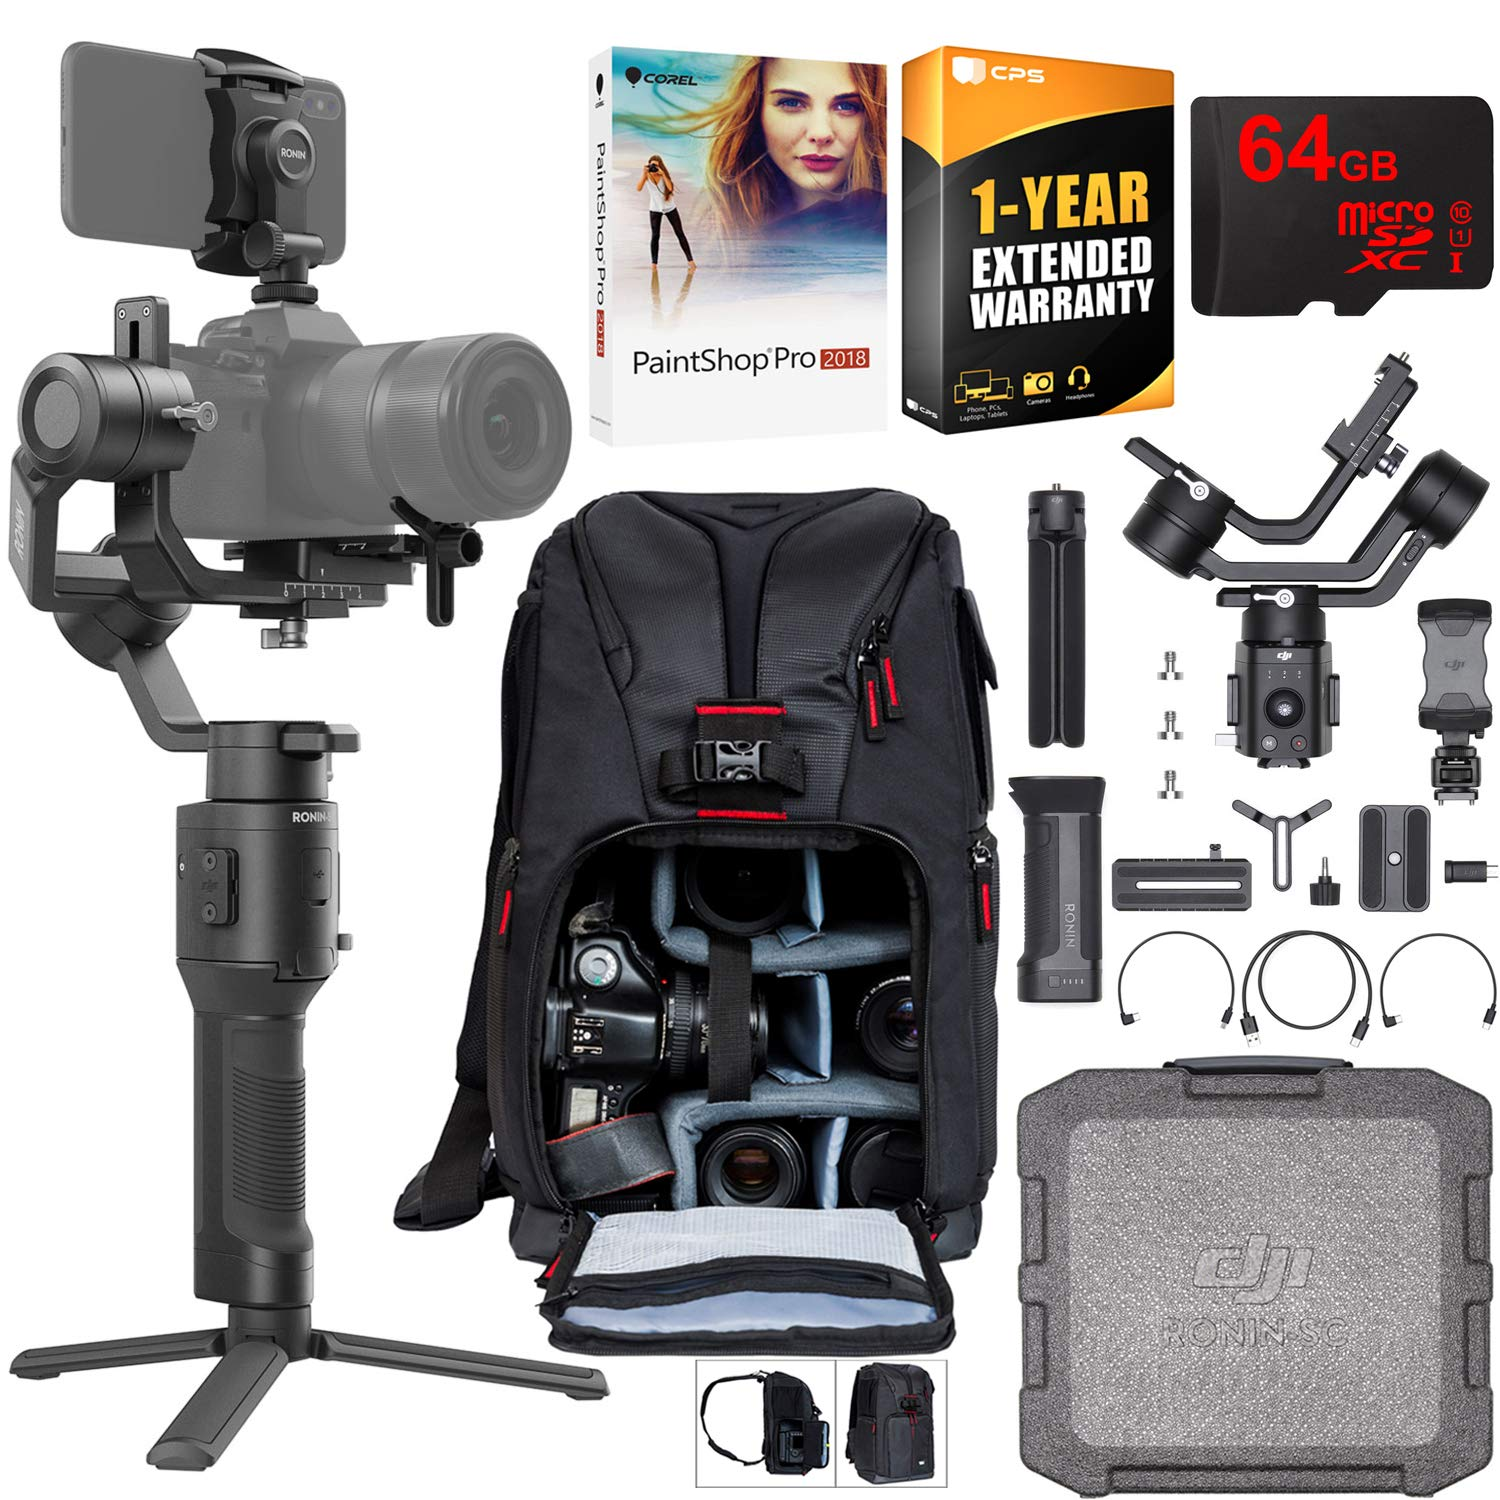 DJI Ronin-SC 3-Axis Gimbal Stabilizer for Mirrorless Cameras Pro Creative Bundle with Deco Photo Backpack + 64GB High Speed Card + Corel Paintshop Pro Software + 1 Year Warranty Extension by DJI